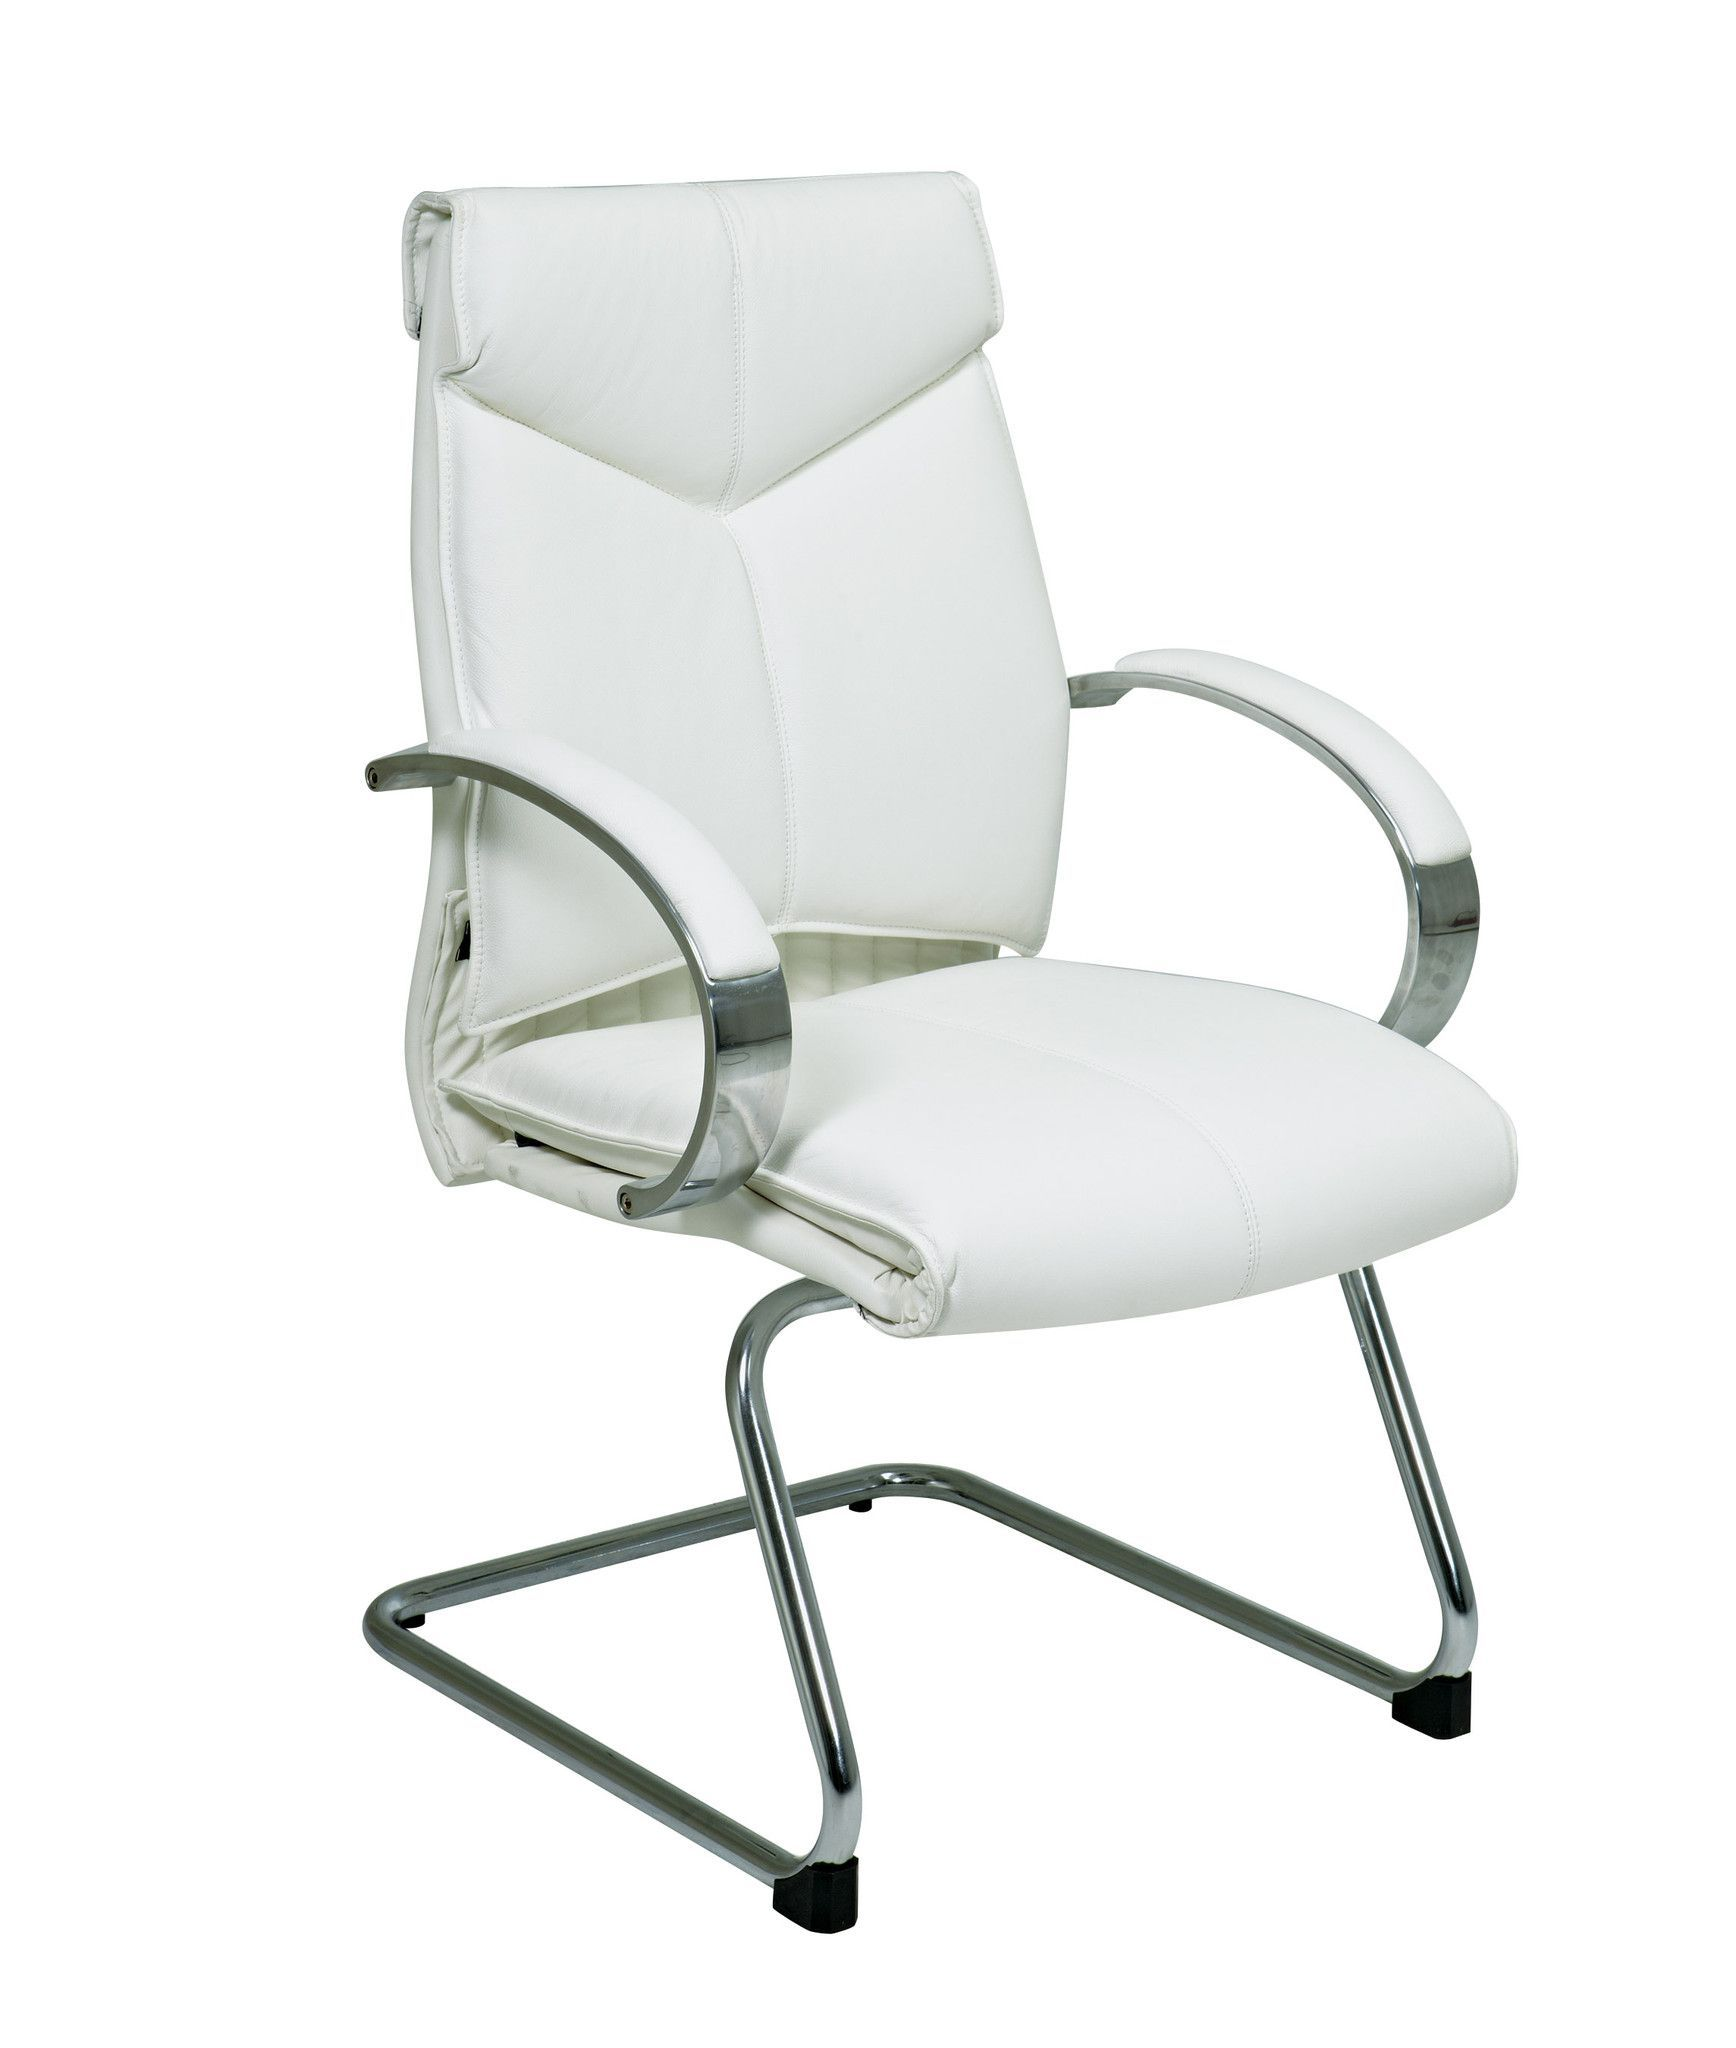 Pro-Line II™ Deluxe Mid Back White Leather Visitors Chair with Chrome Base and Padded Polished Aluminum Arms